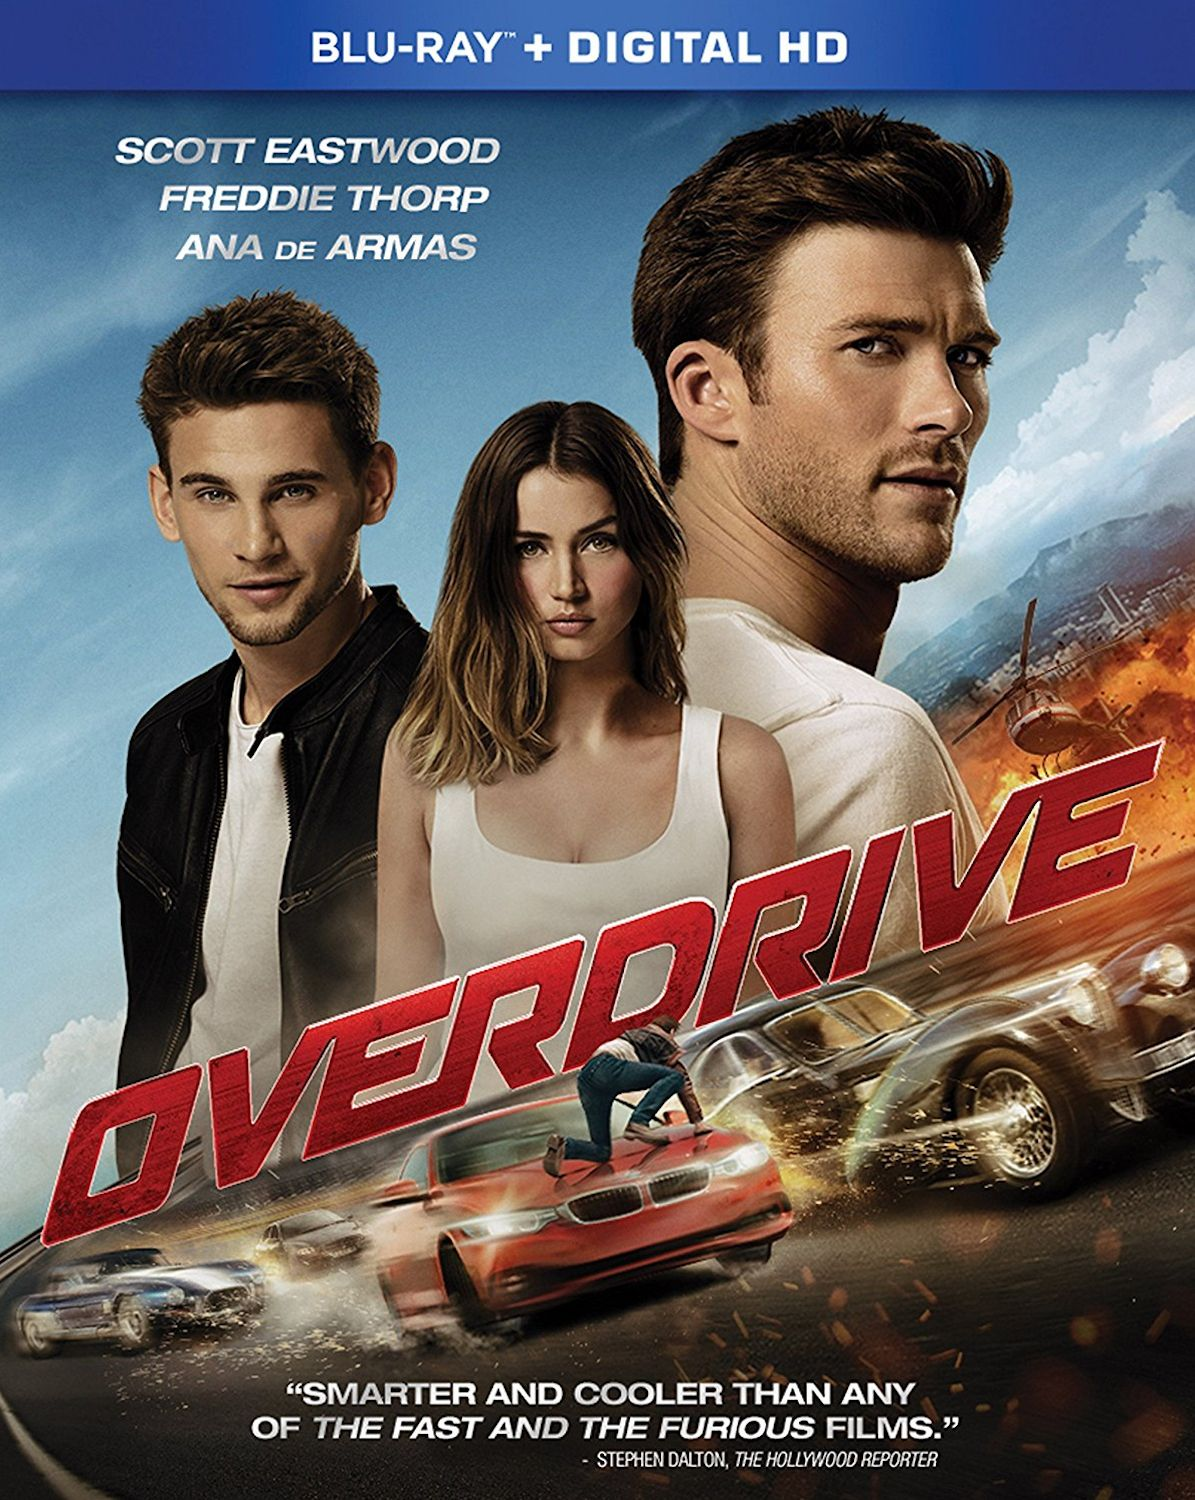 Overdrive Blu Ray Paramount With Images Download Movies